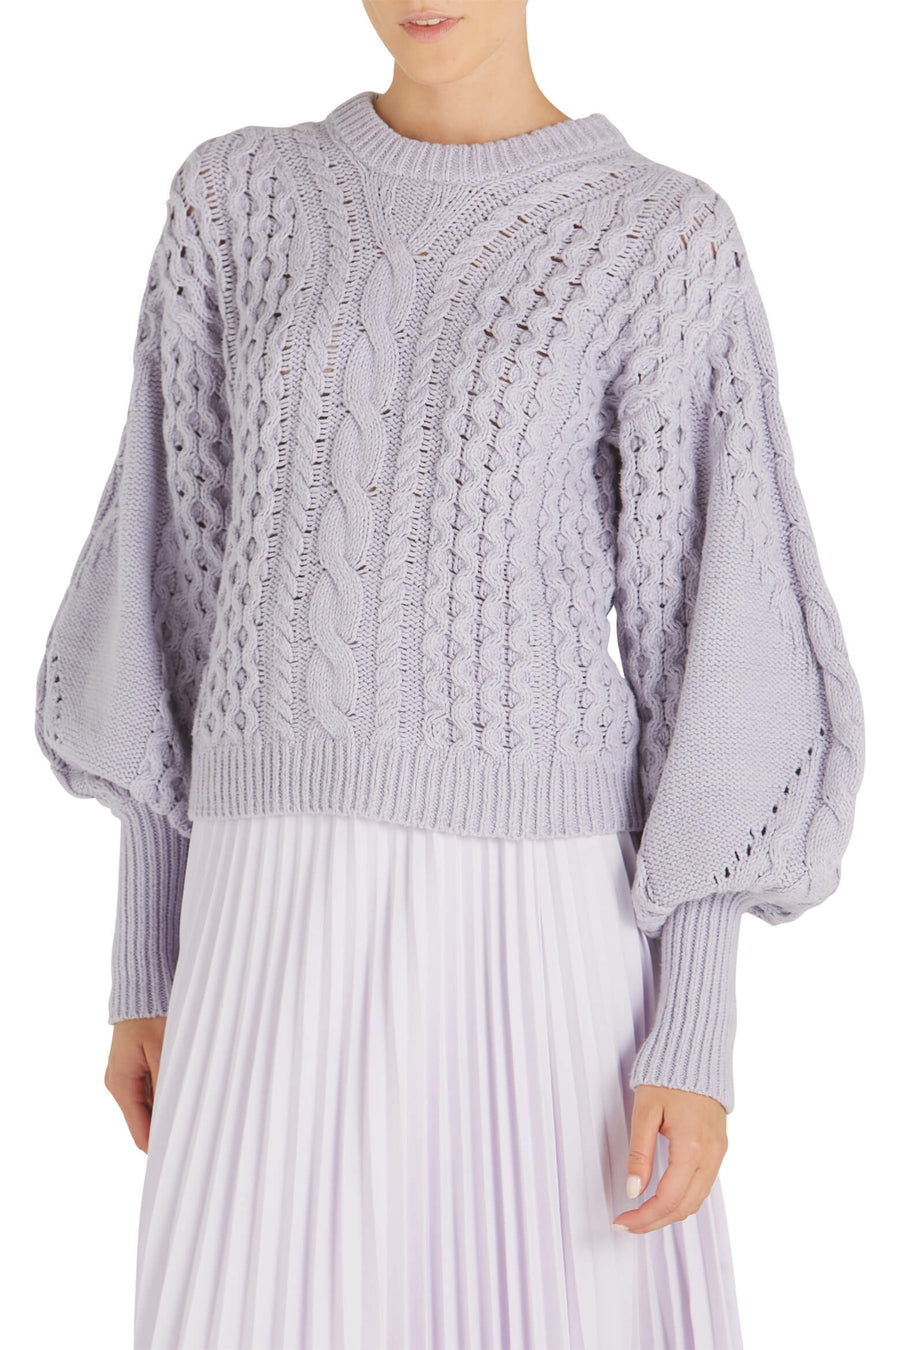 A.L.C Serena Knit Long Sleeve Sweater in Chuckoo from The New Trend